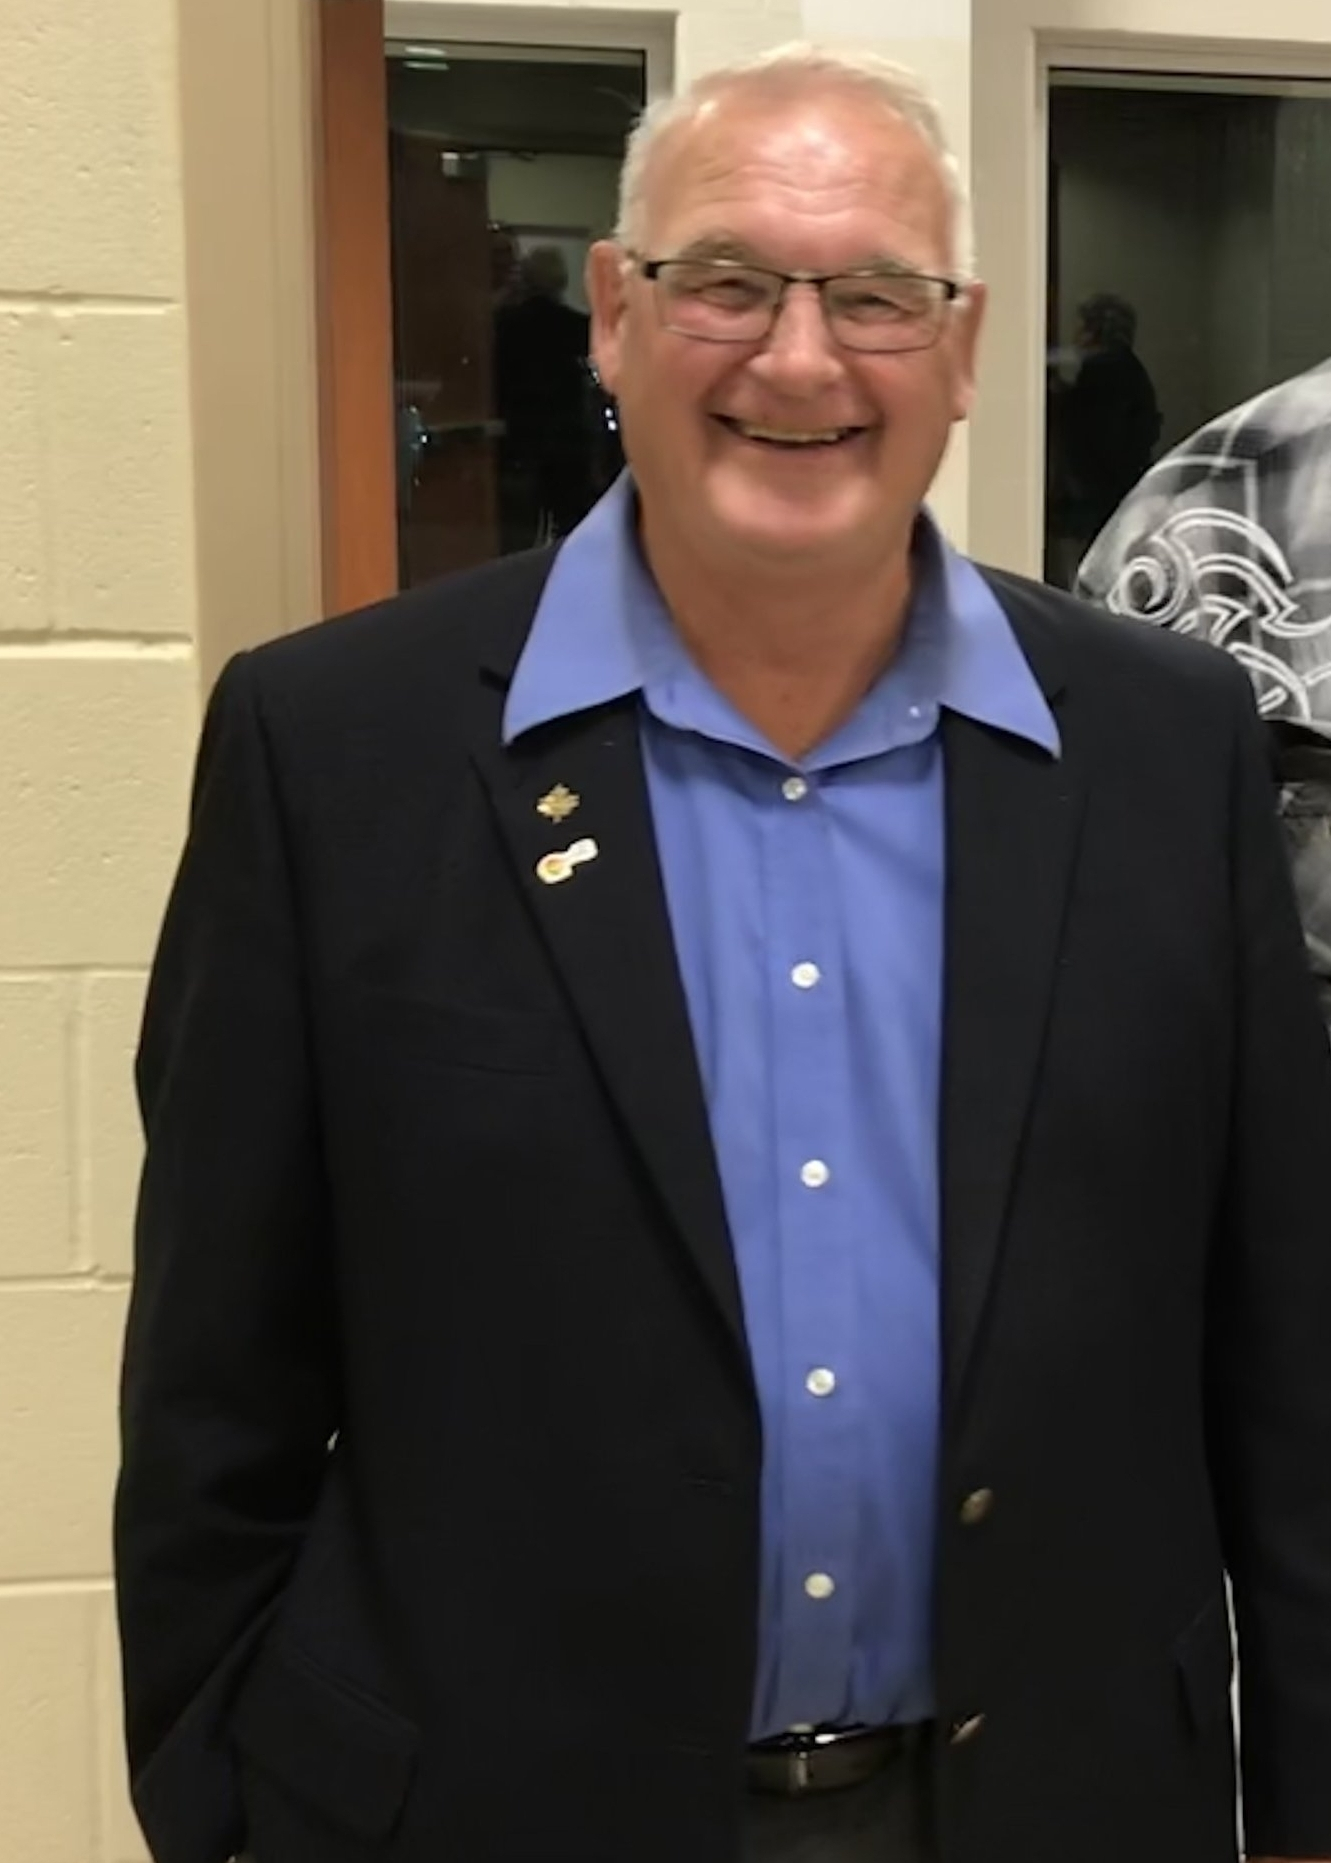 Hi, I'm Doug Elmslie - I have happily represented the residents of Ward 6 for the last 12 years, bringing a wealth of knowledge and experience to the position.Over the years, I have been involved in many committees and initiatives seeing numerous improvements and accomplishments, for example, the new splash pad in Fenelon Falls. Working with many volunteers, I am chair of two very significant and successful events: Canada Day and Santa Day.I look forward to the next four years and serving all the residents of the new Ward 3 and collaborating with other members of the newly streamlined council.